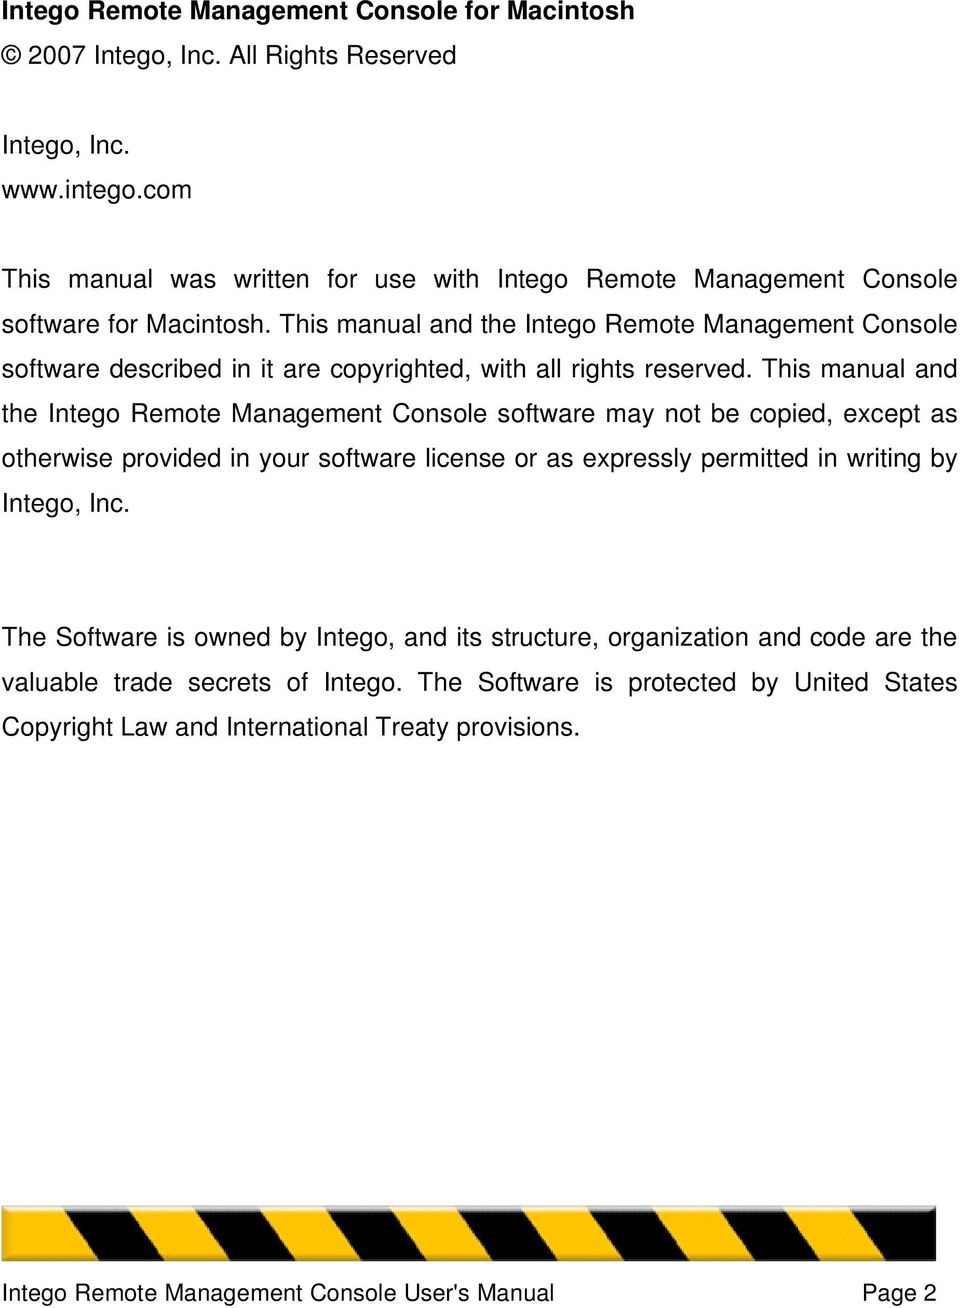 This manual and the Intego Remote Management Console software described in it are copyrighted, with all rights reserved.